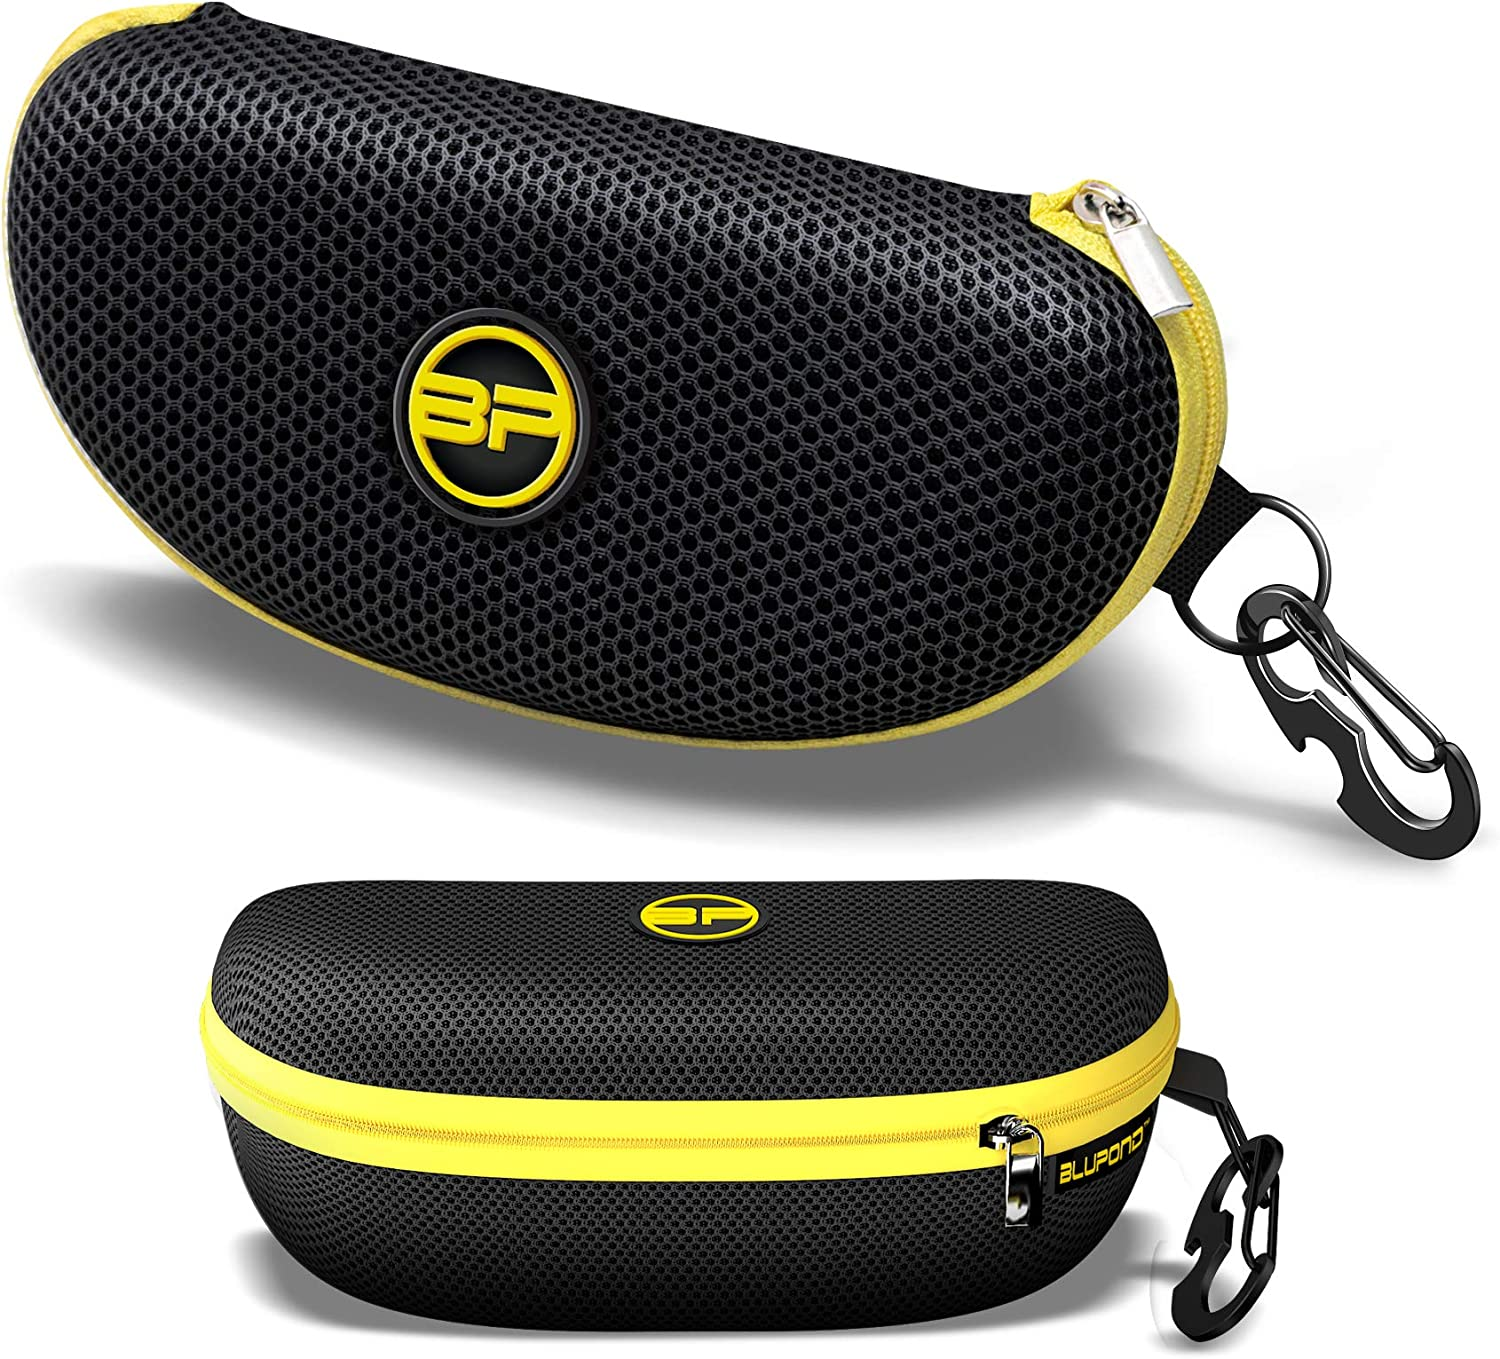 BLUPOND Semi Hard EVA Large Glasses Case with Metal Carabiner 5 IN 1 Set for Sports Sunglasses